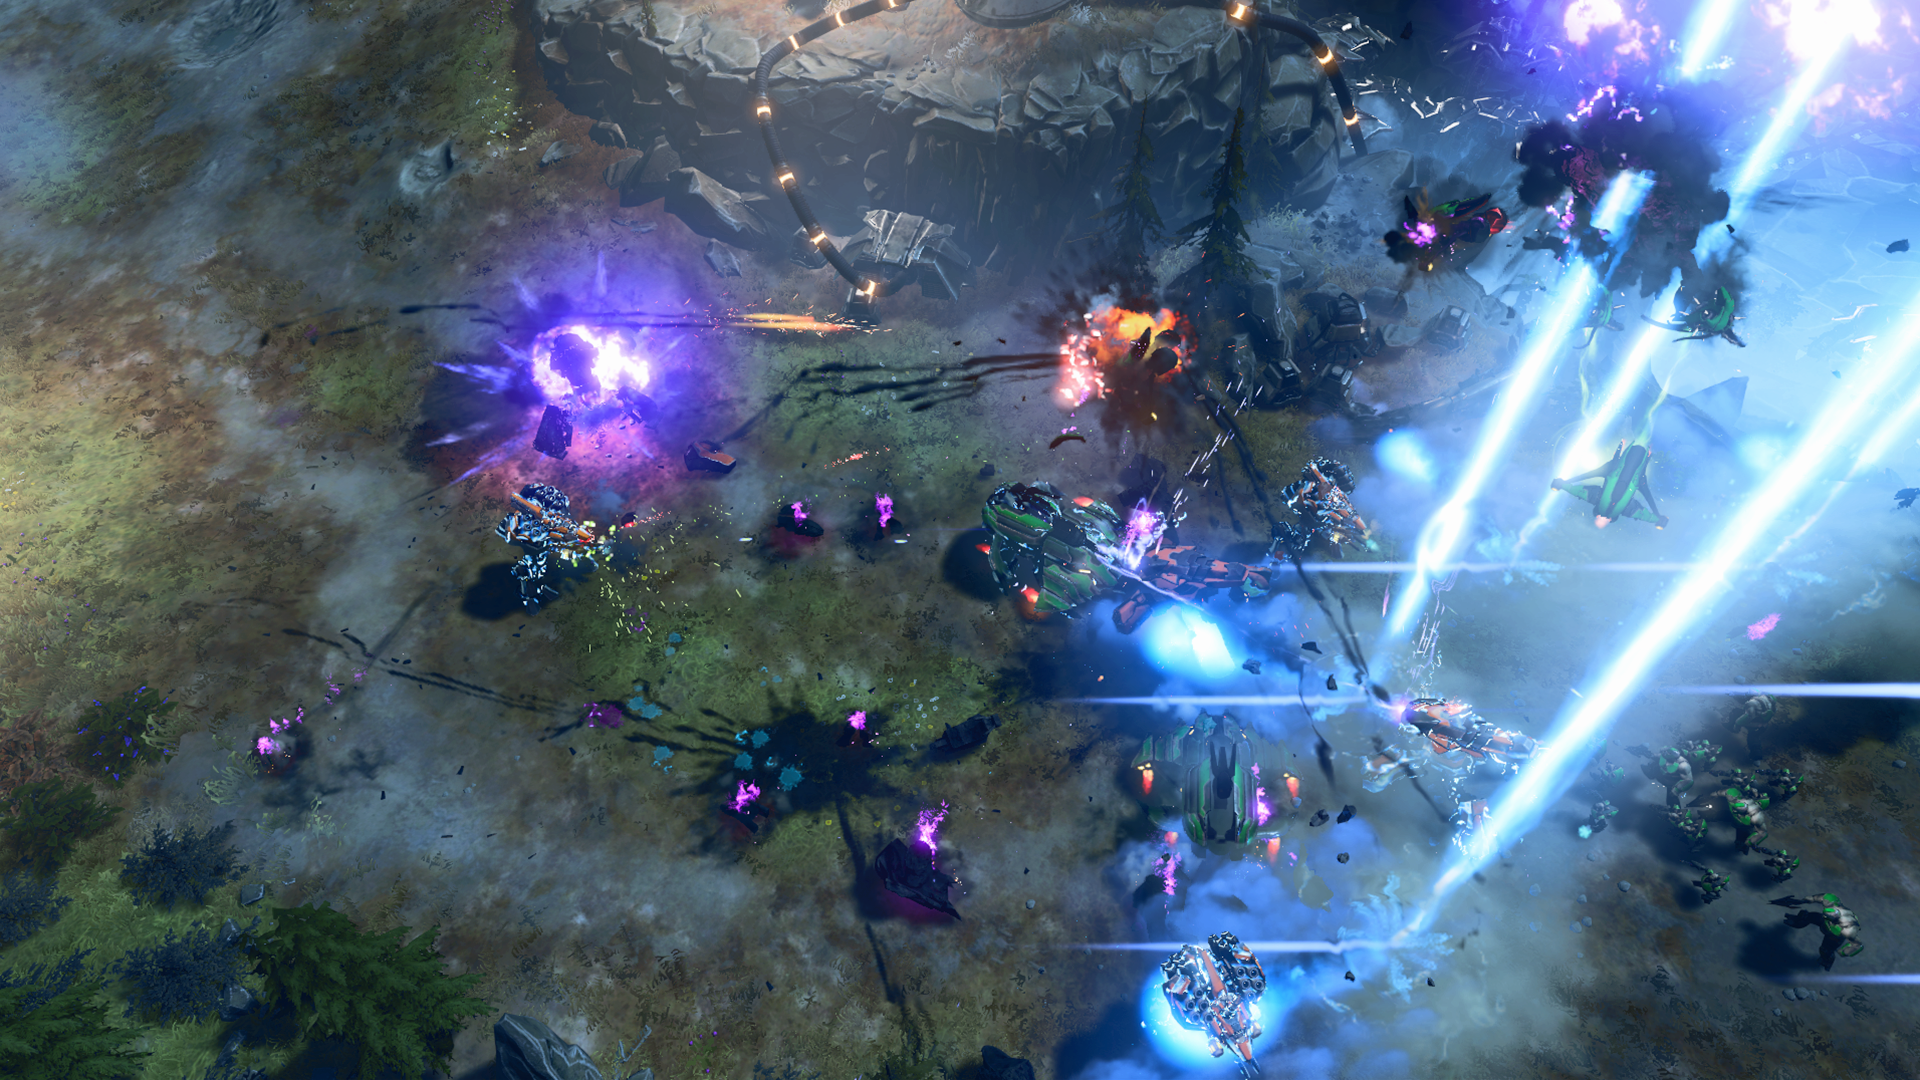 Halo Wars 2 New Gameplay Video Showcases First Campaign Mission